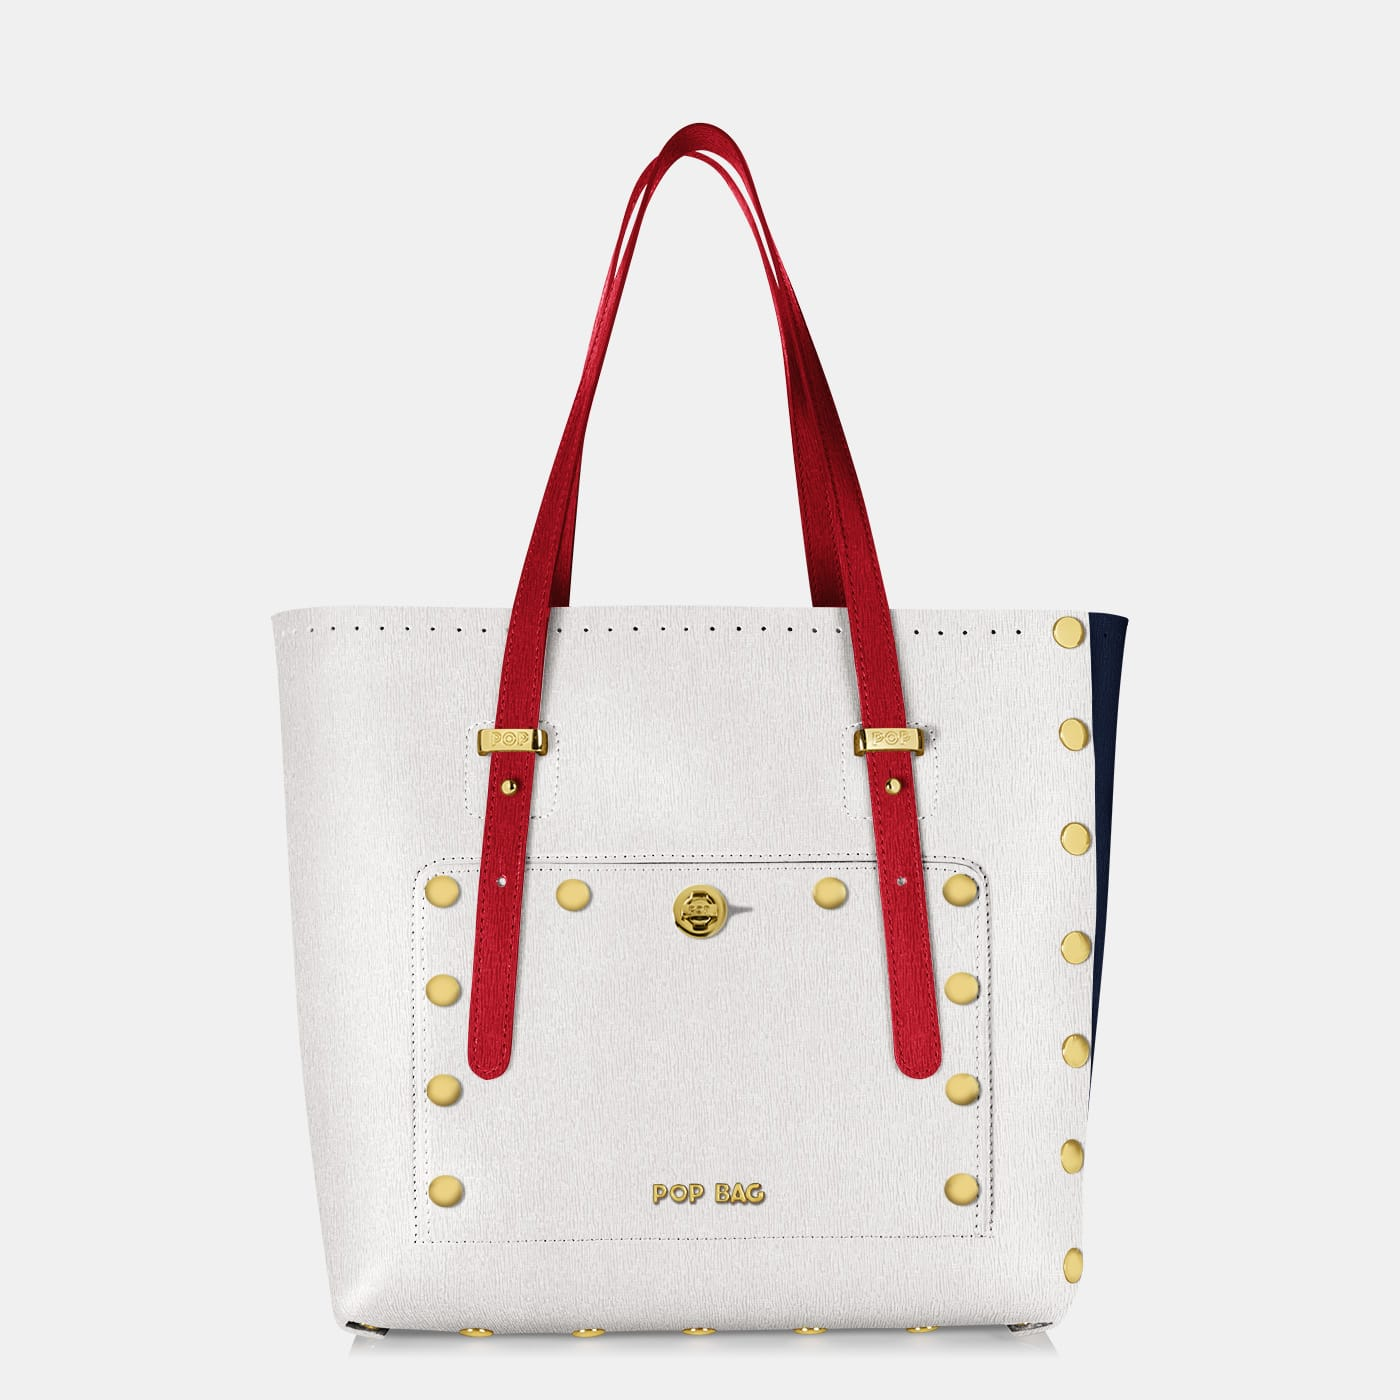 Pop Sailor Bag - White - Dark Blue - Red - Medium